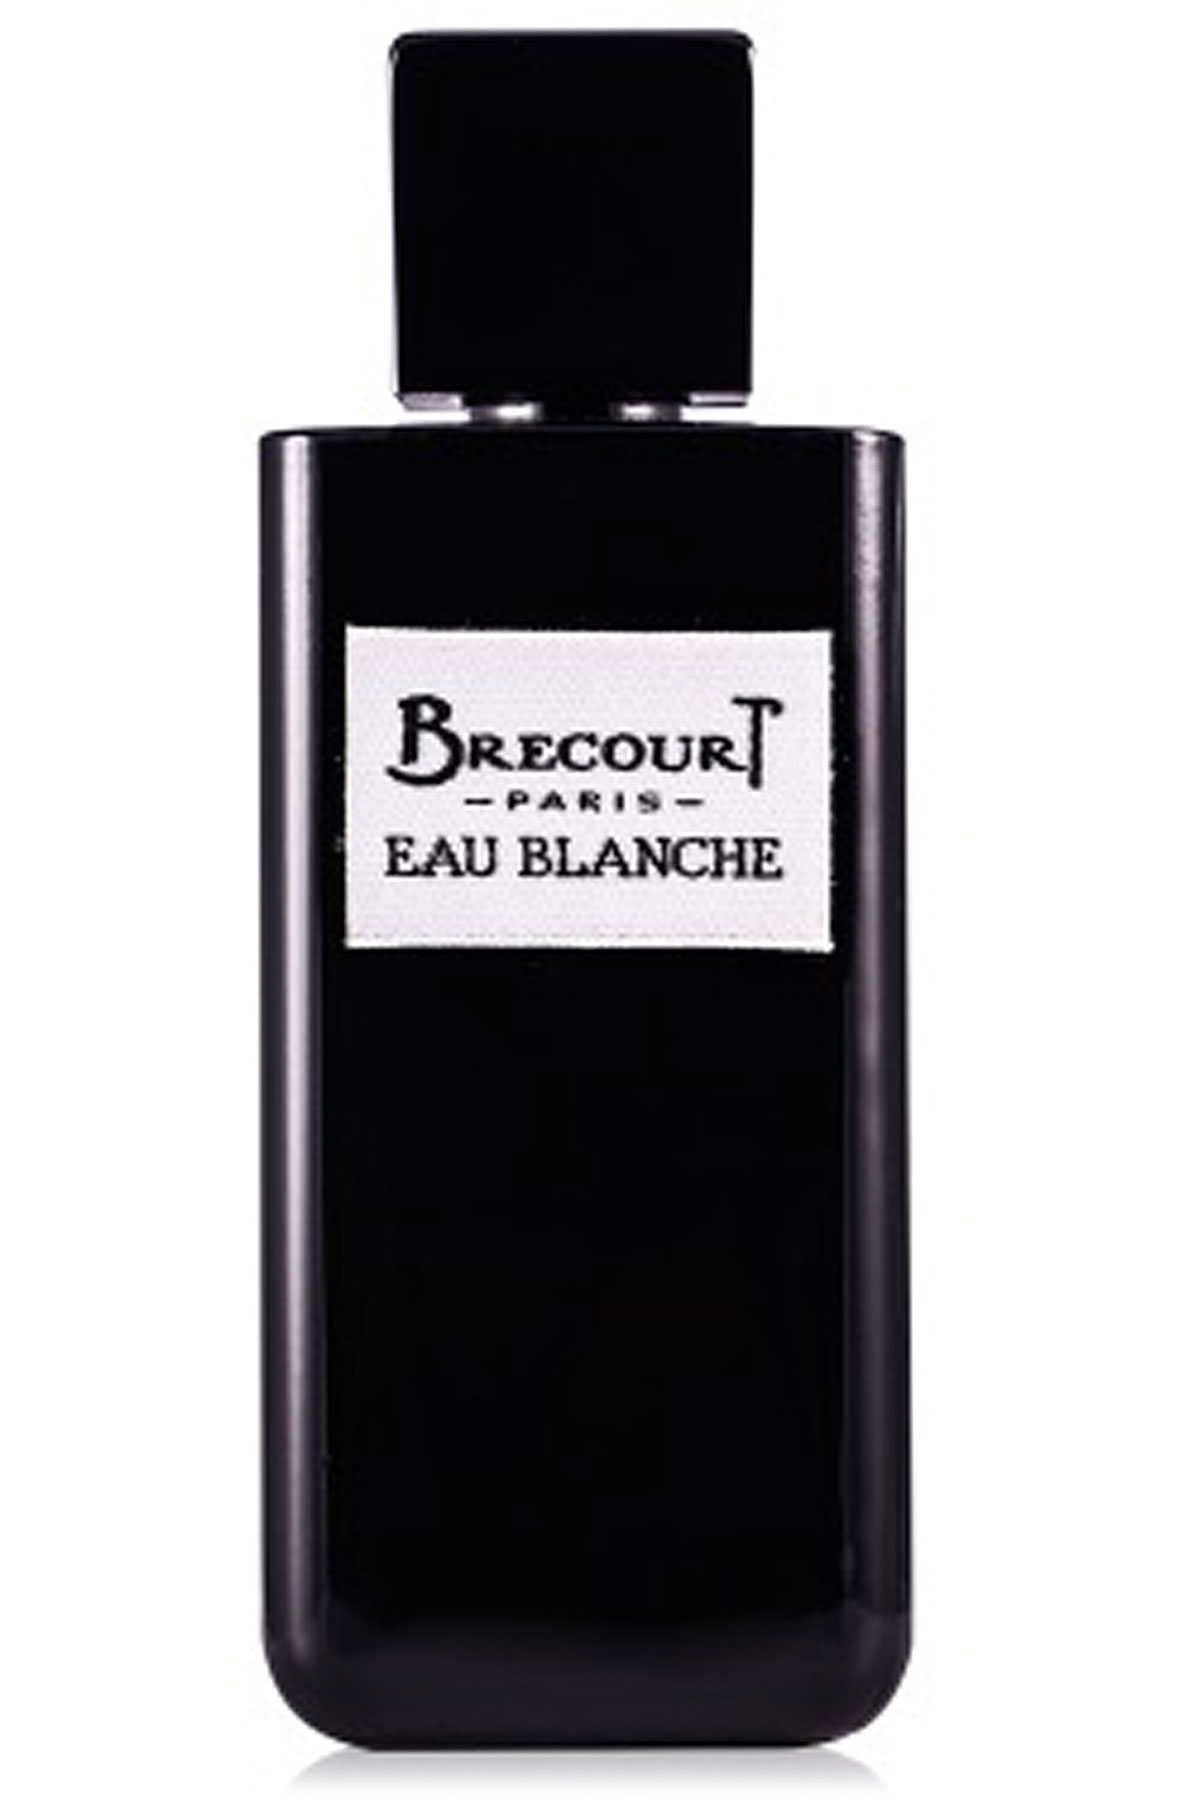 Brecourt Fragrances for Women, Eau Blanche - Eau De Parfum - 100 Ml, 2019, 100 ml